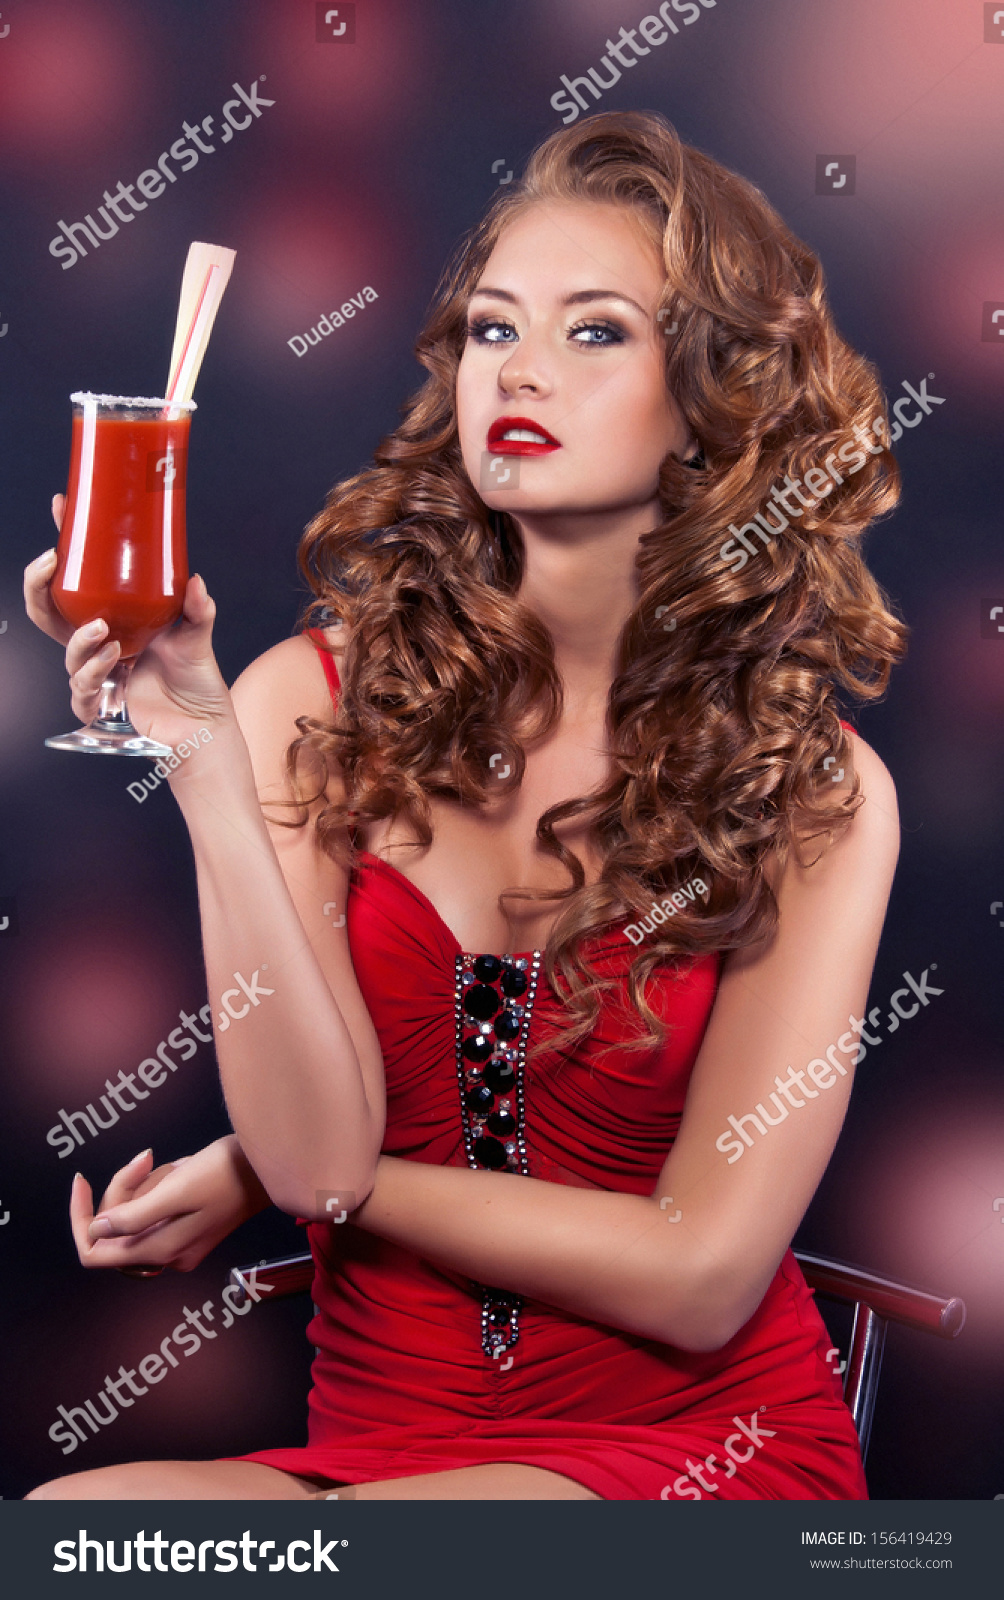 Beautiful Redhaired Girl Red Cocktail Dress Stock Photo 156419429 ...